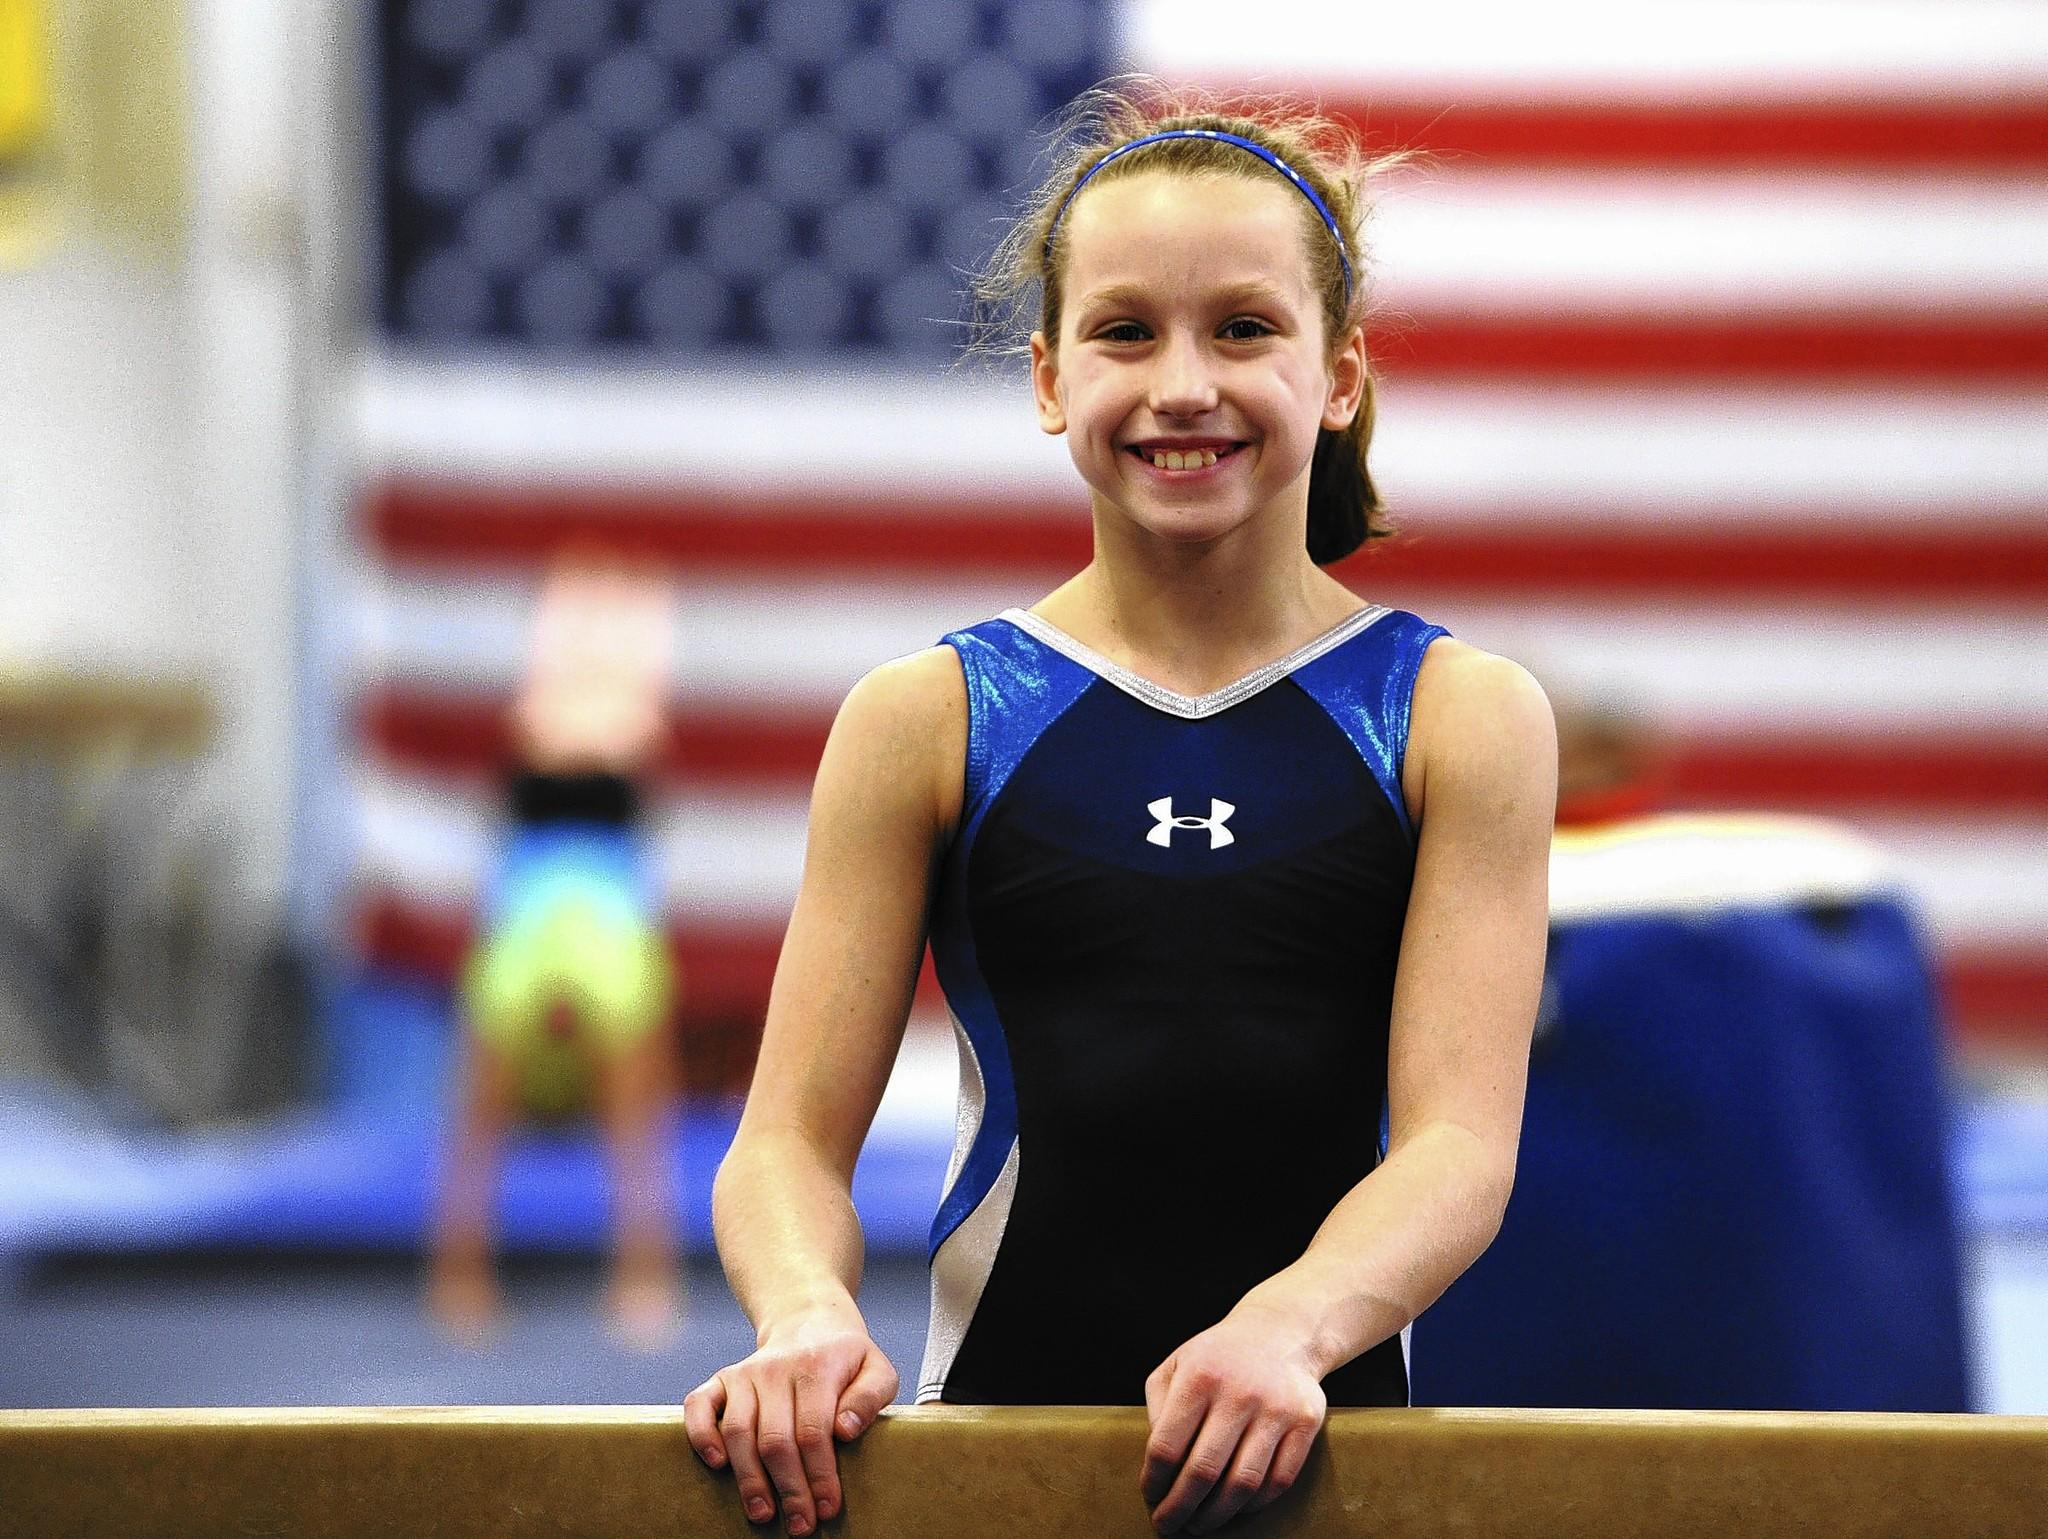 Alexa Brinker pauses during a workout at the Parkettes National Gymnastics Training Center in Allentown.